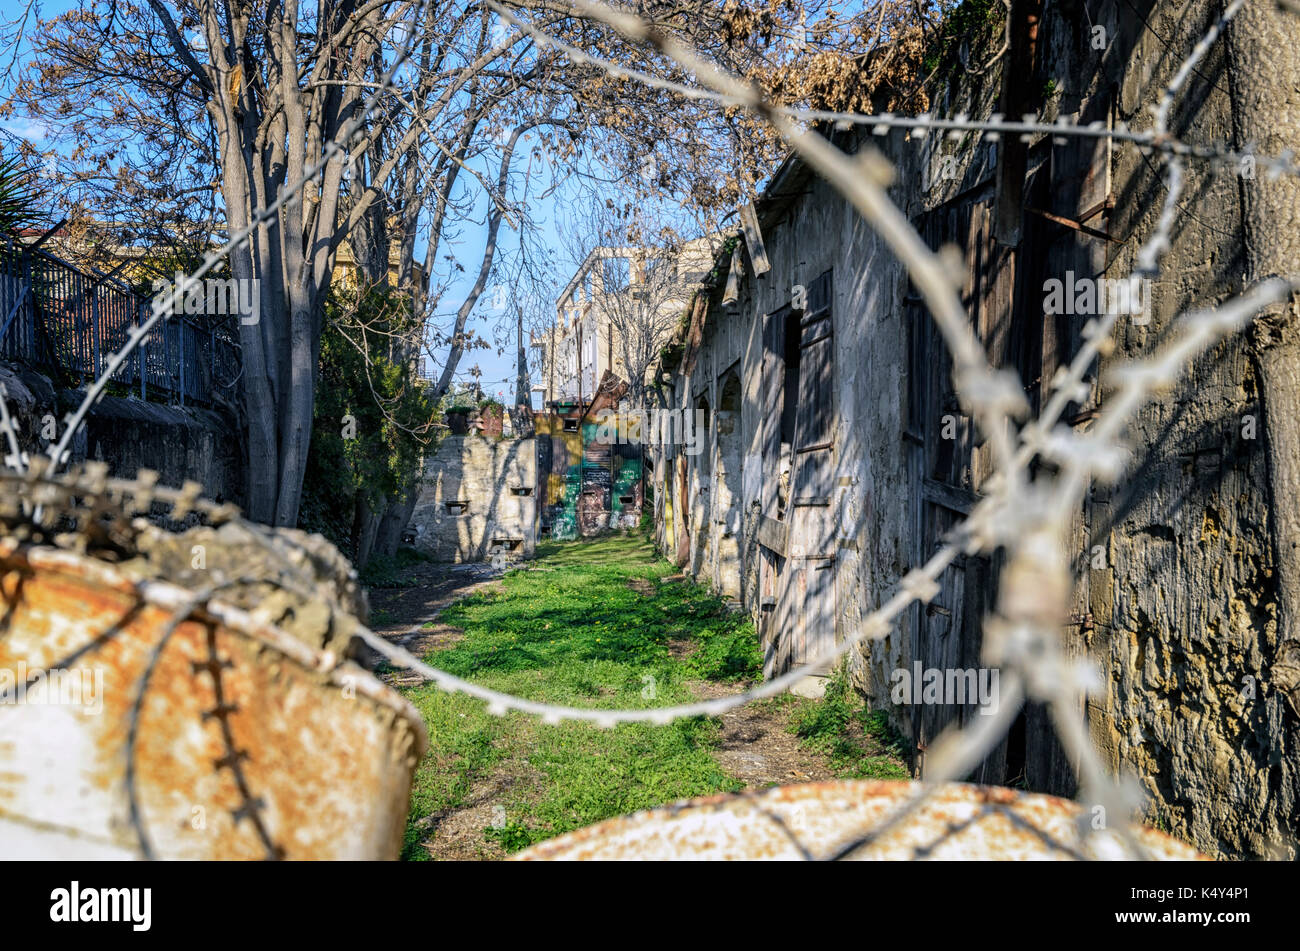 United Nations buffer zone (Green line) in Cyprus in Nicosia. - Stock Image